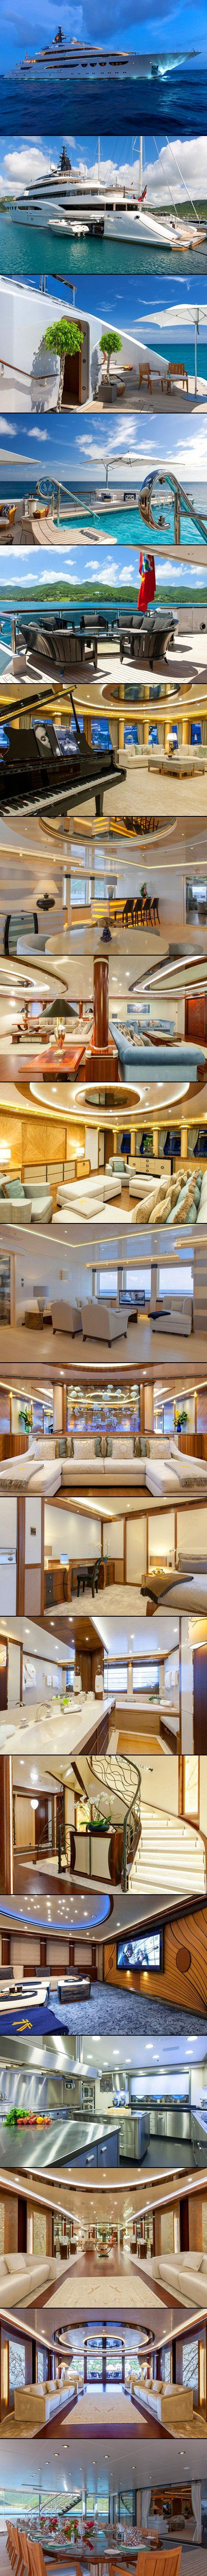 luxury super yachts 15 best photos 3dce75f55abb74ecc0549a26289c5dd4